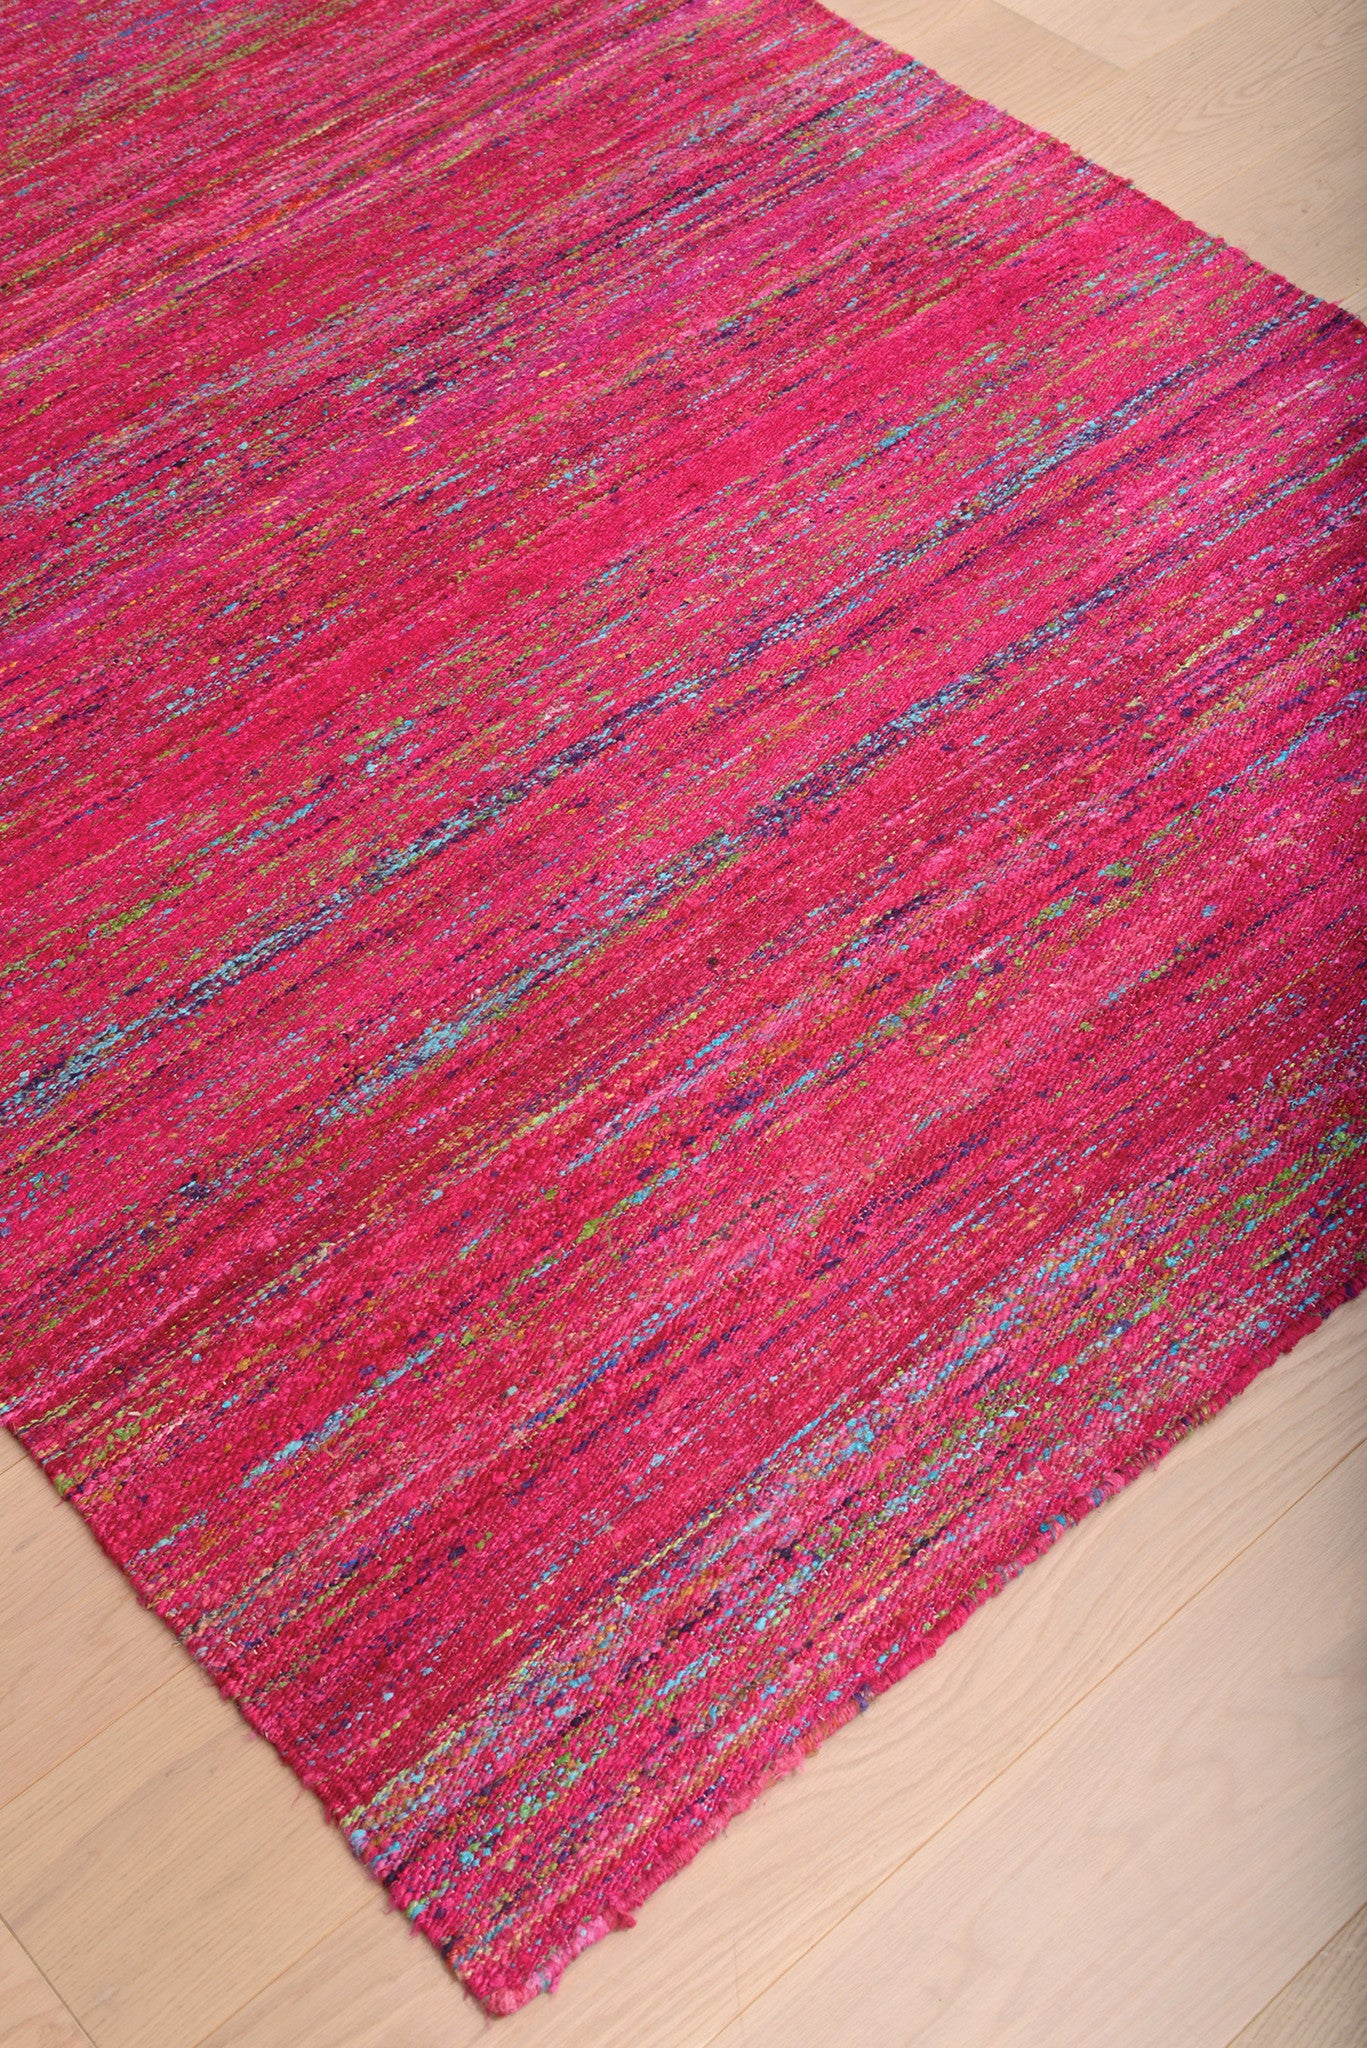 Red Fuchsia Flat Weave Handcrafted Wool Indian Rug Woodwaves